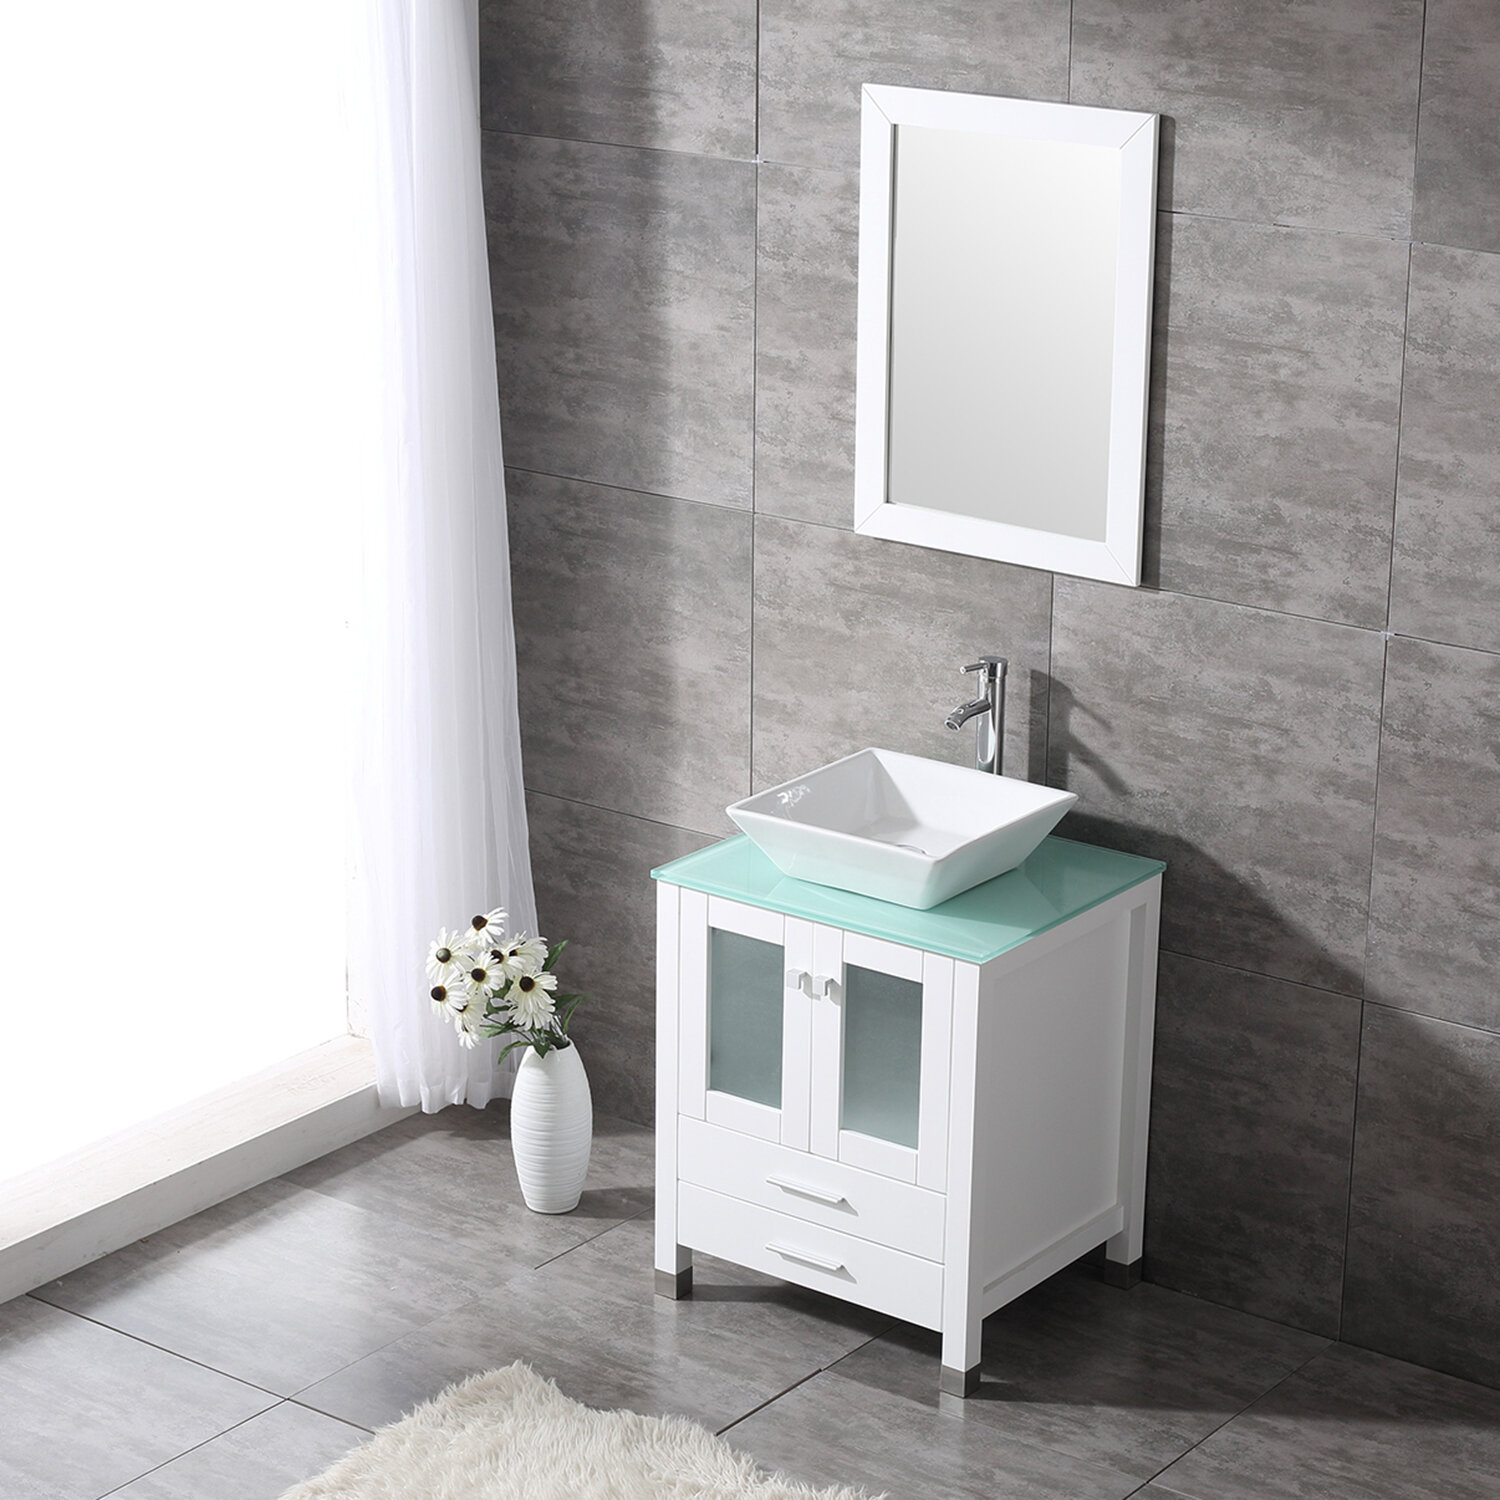 24 Inches Traditional Bathroom Vanity Set Single White Cabinet And Glass Vessel Sink 1 Large Sliding Drawers And 2 Door Pop Up Drain Faucet Bathroom Vanities